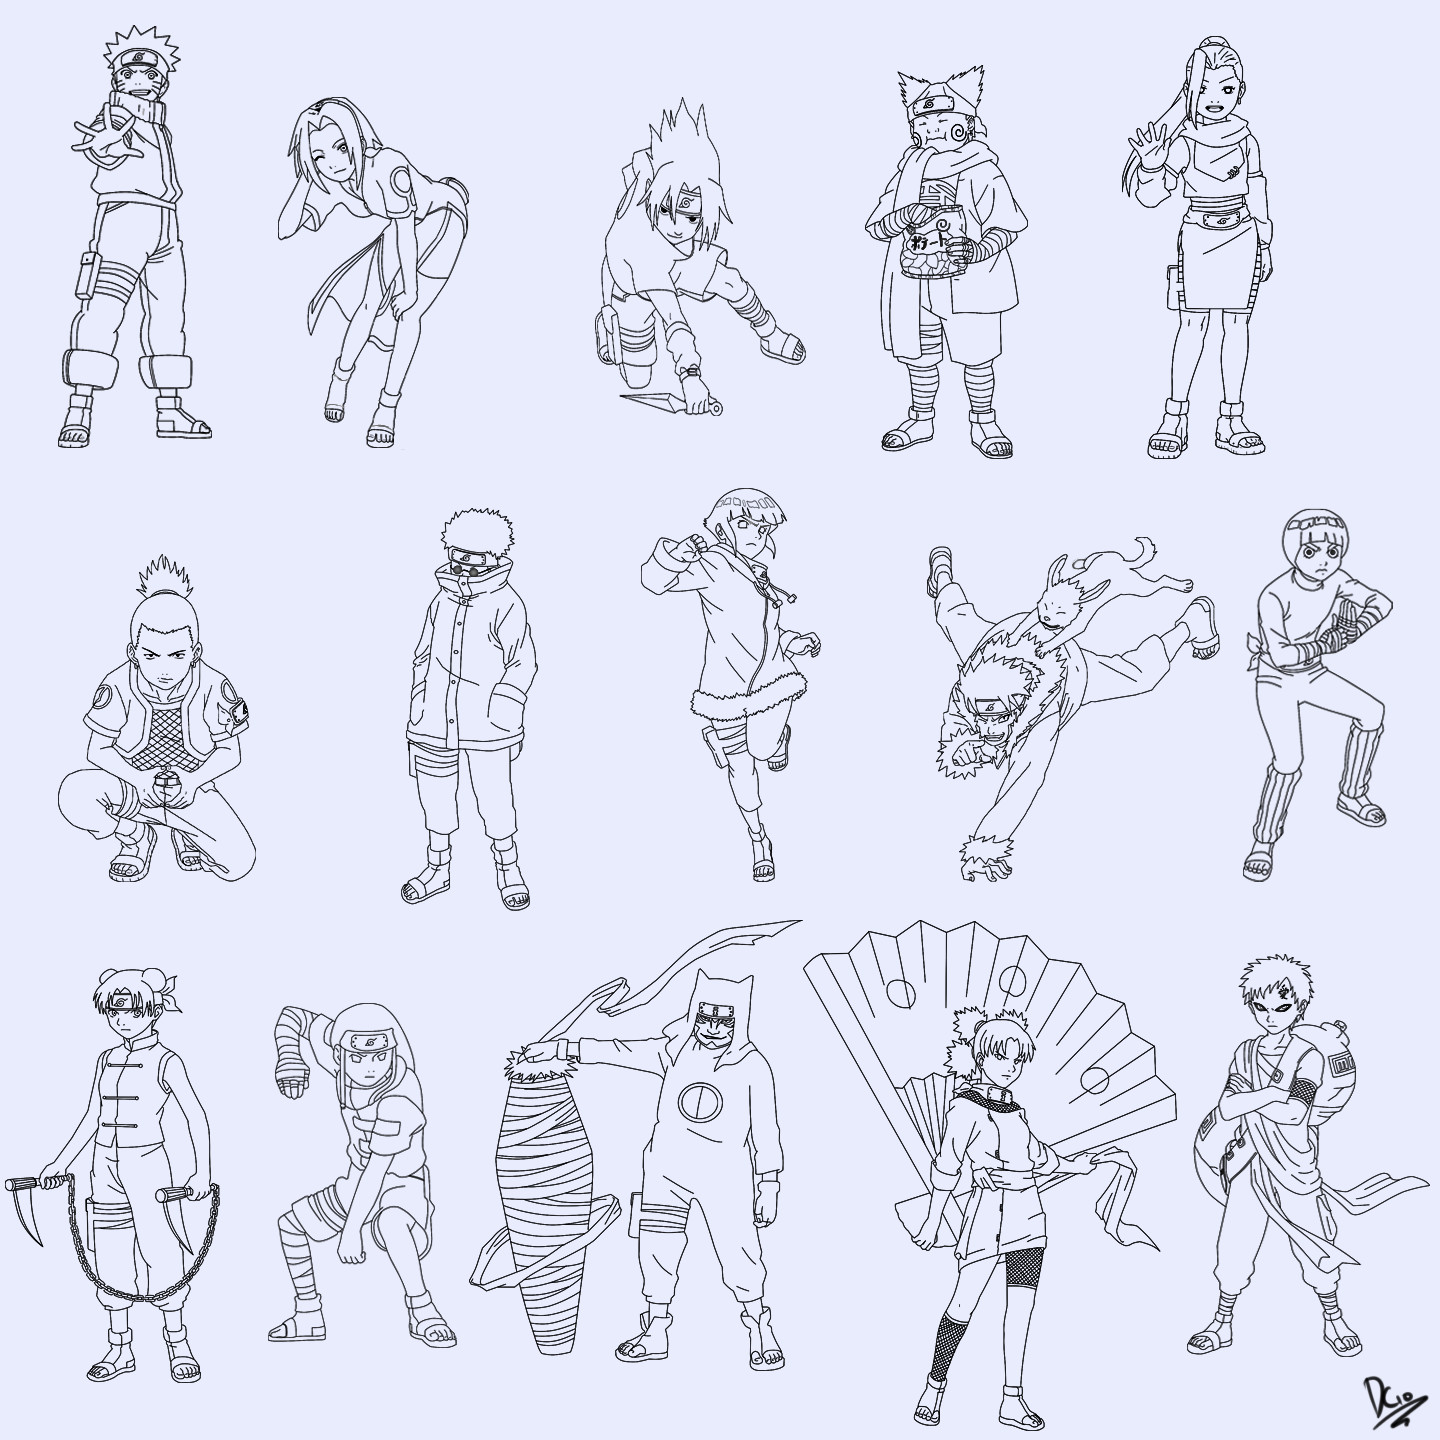 The Naruto Rookies By Cleanminded On DeviantArt